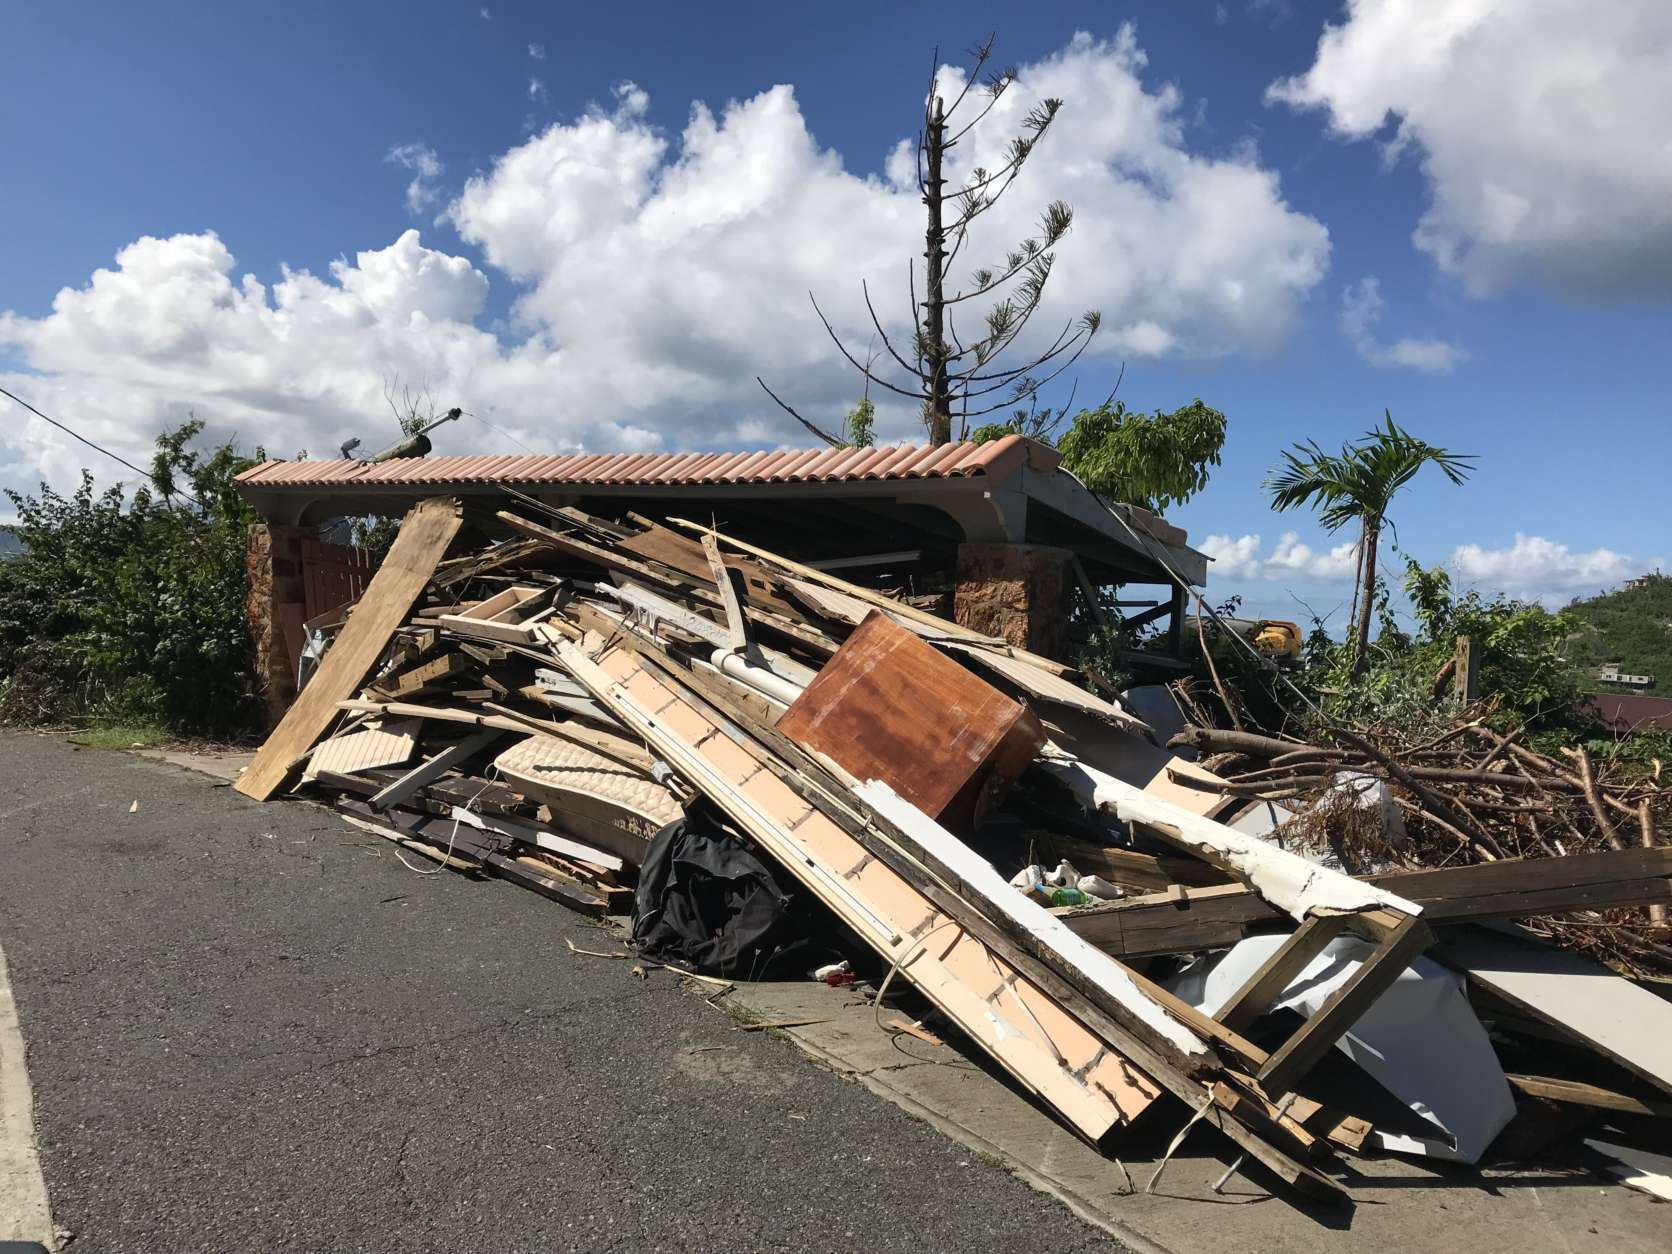 What remains of another Great Cruz Bay villa. Most damaged or destroyed homes were older wooden structures. (WTOP/Jeff Clabaugh)